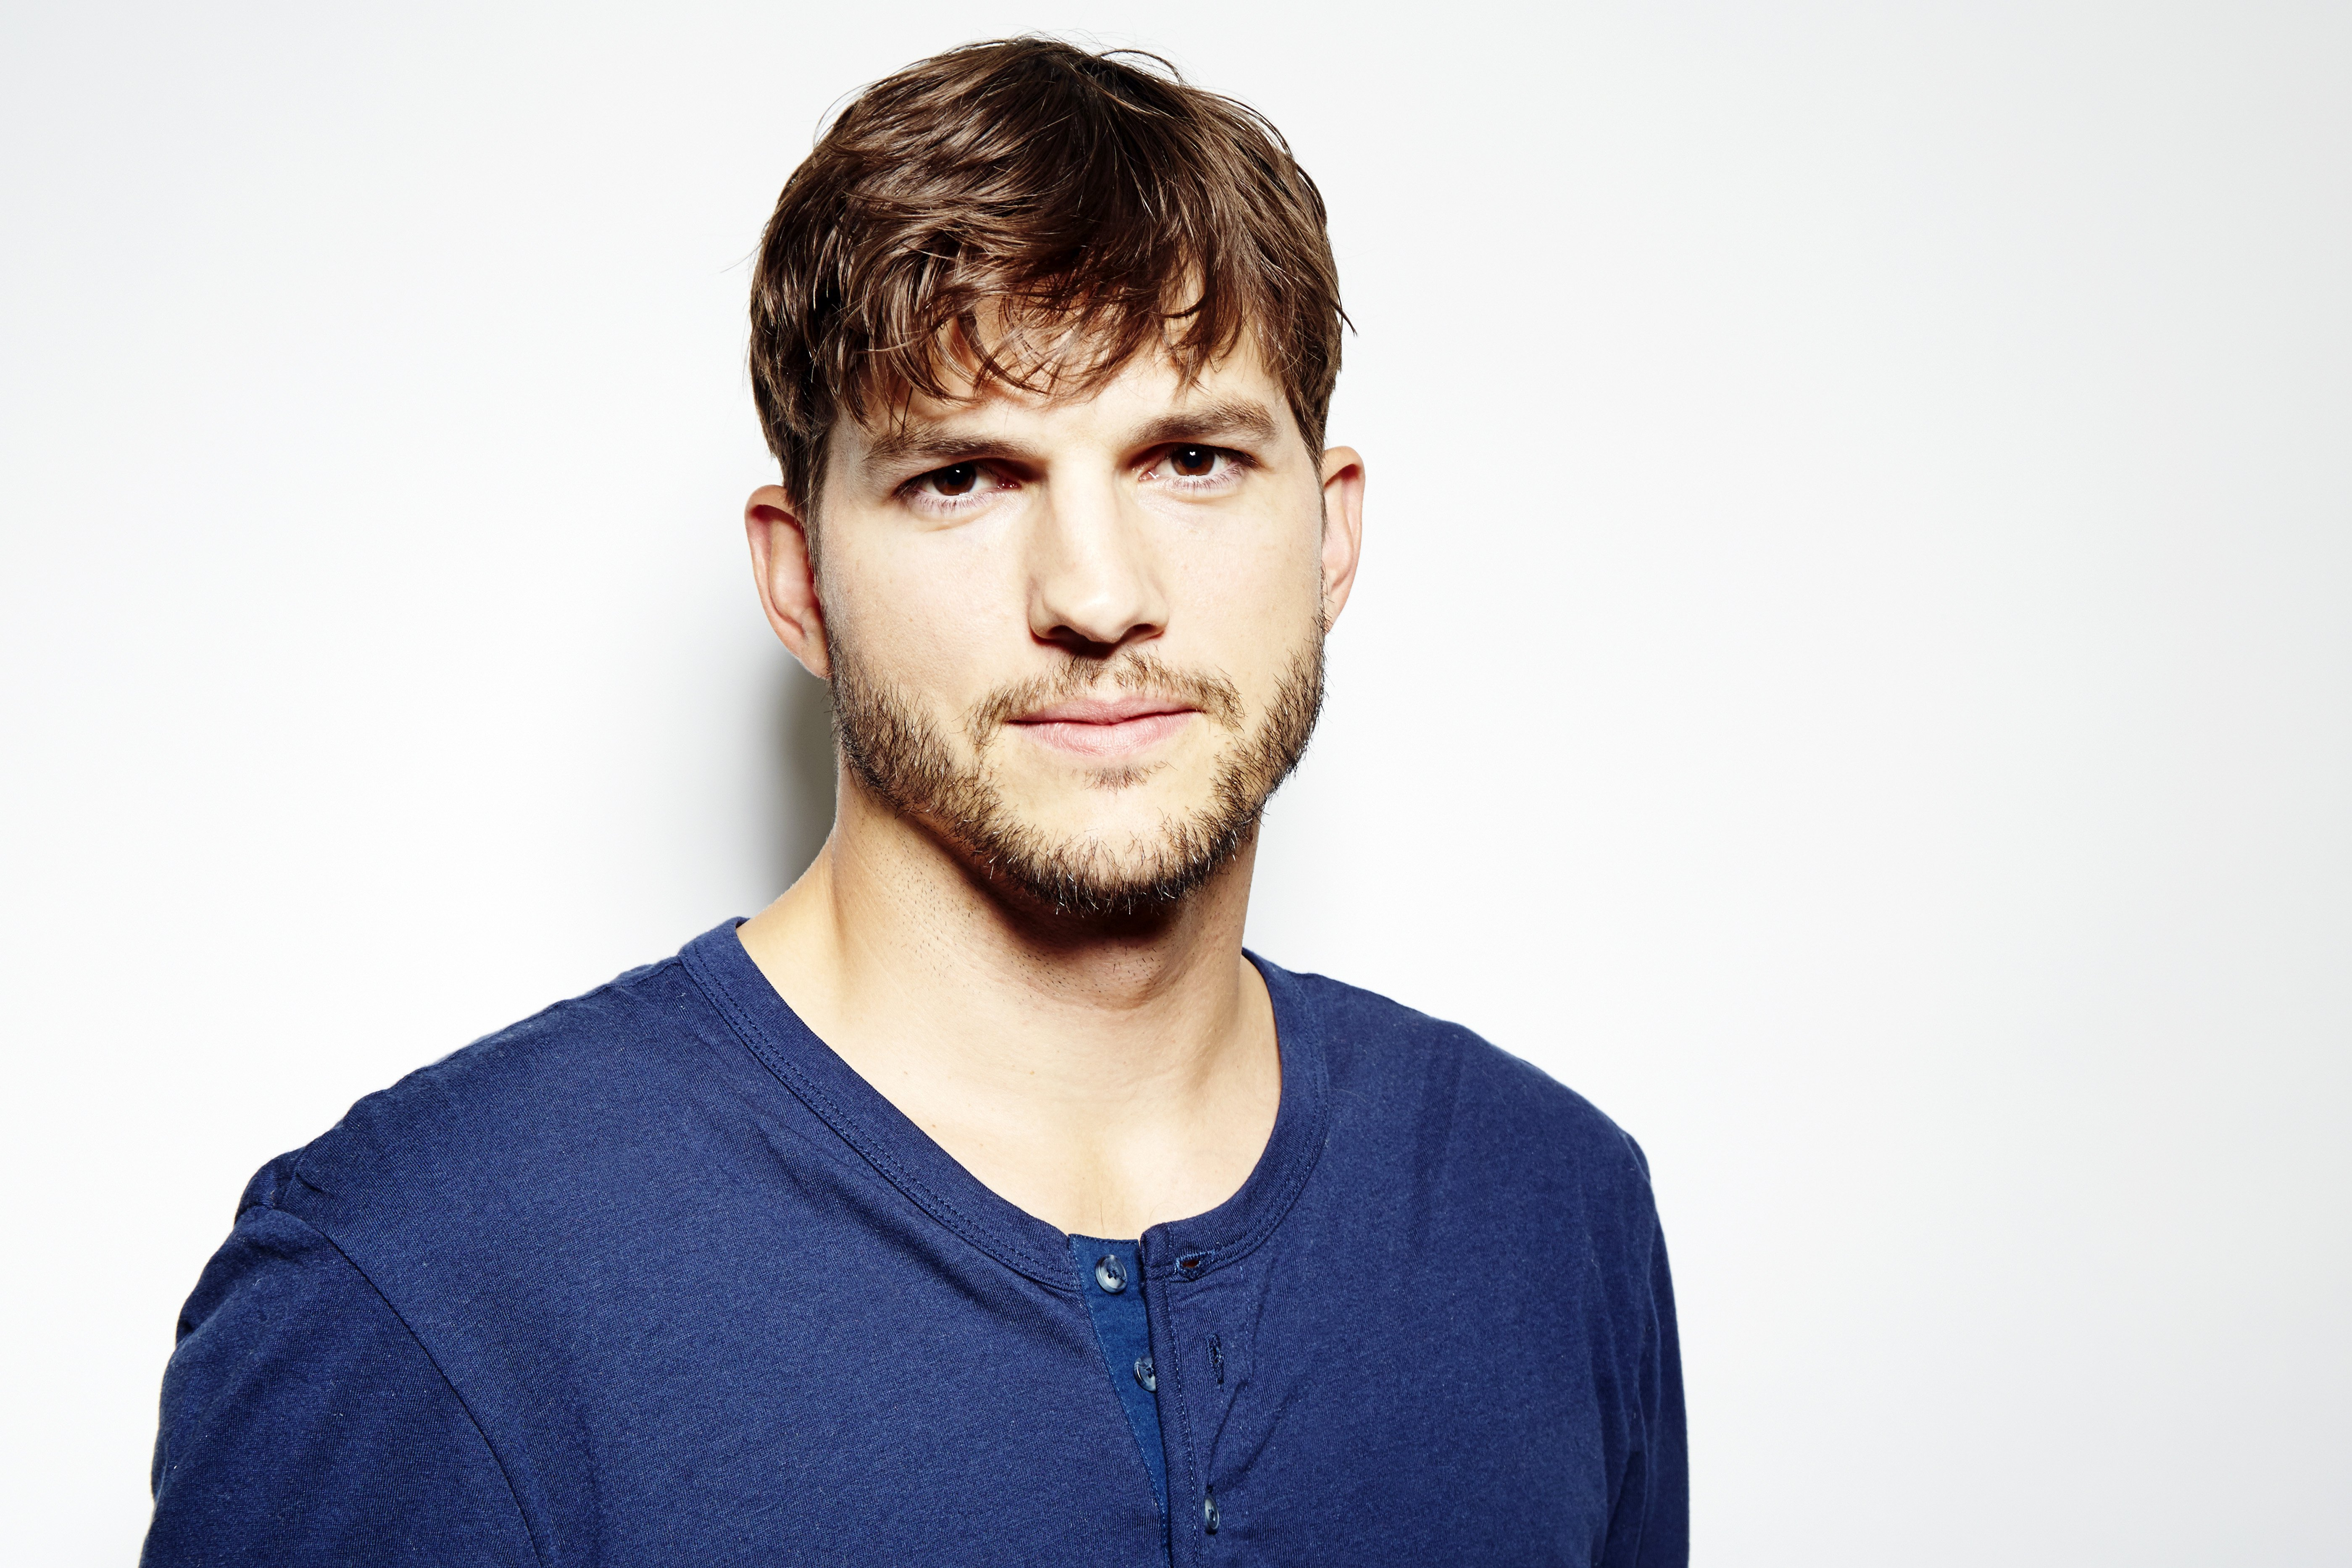 Ashton Kutcher Wallpapers Images Photos Pictures Backgrounds 5597x3731